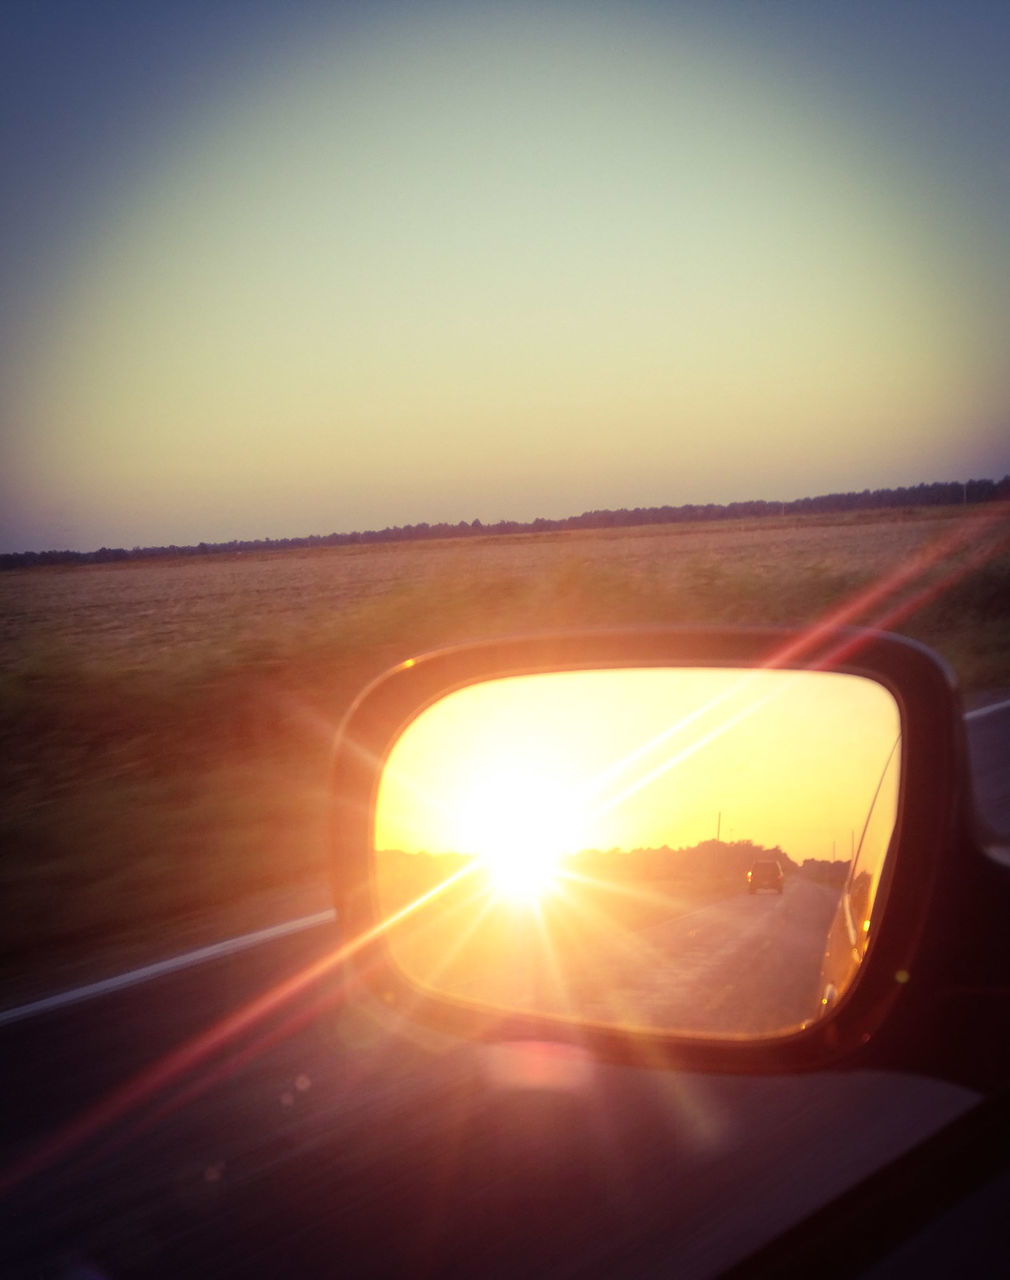 sun, sunset, sunlight, lens flare, sky, transportation, nature, side-view mirror, speed, beauty in nature, no people, car, scenics, clear sky, landscape, mode of transport, reflection, outdoors, motion, close-up, day